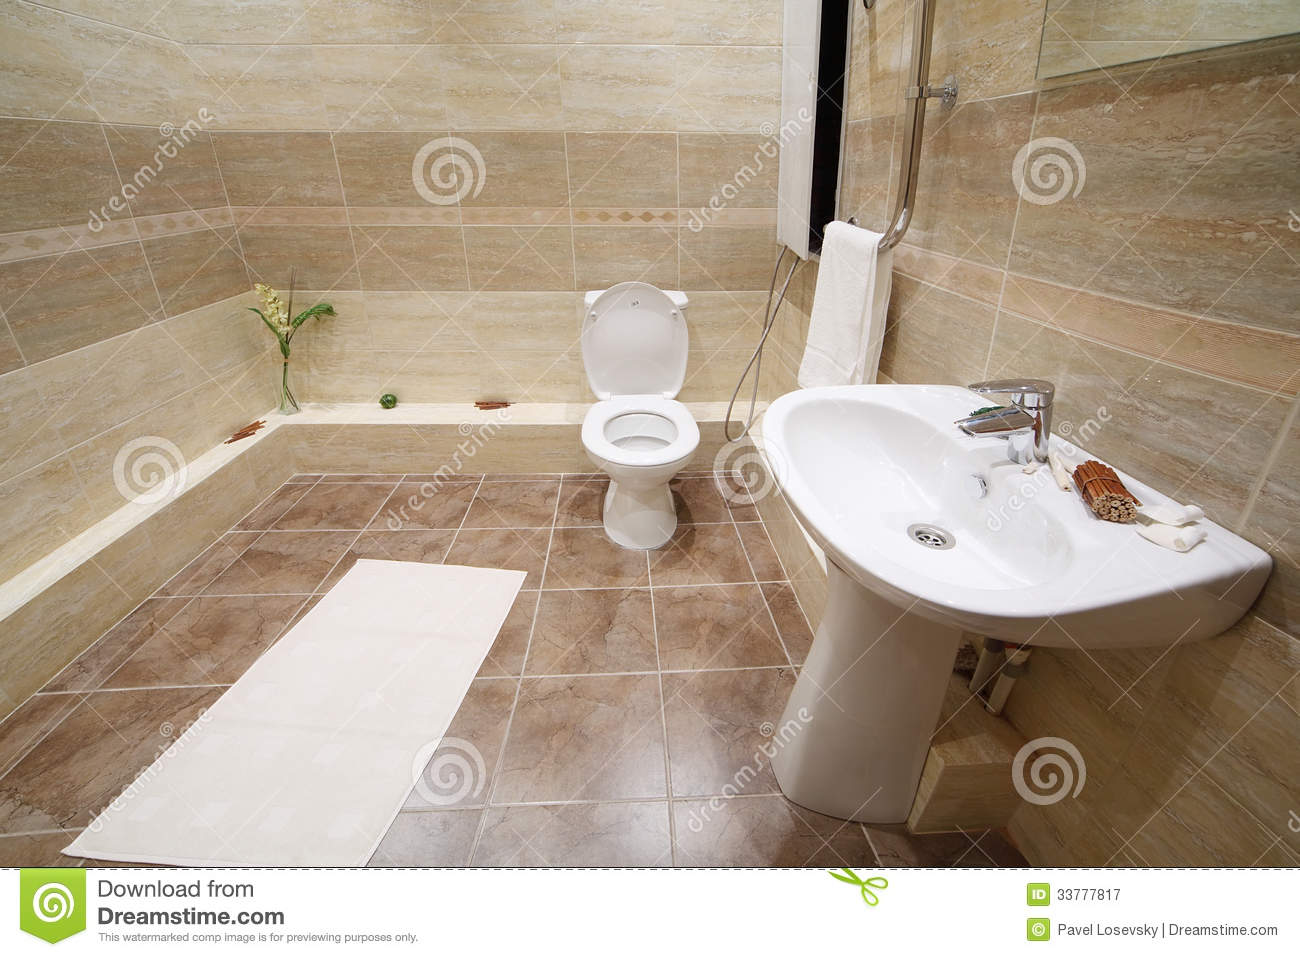 Helle Küchenfliesen Light And Clean Toilet With Tiles On Floor Stock Image Image Of